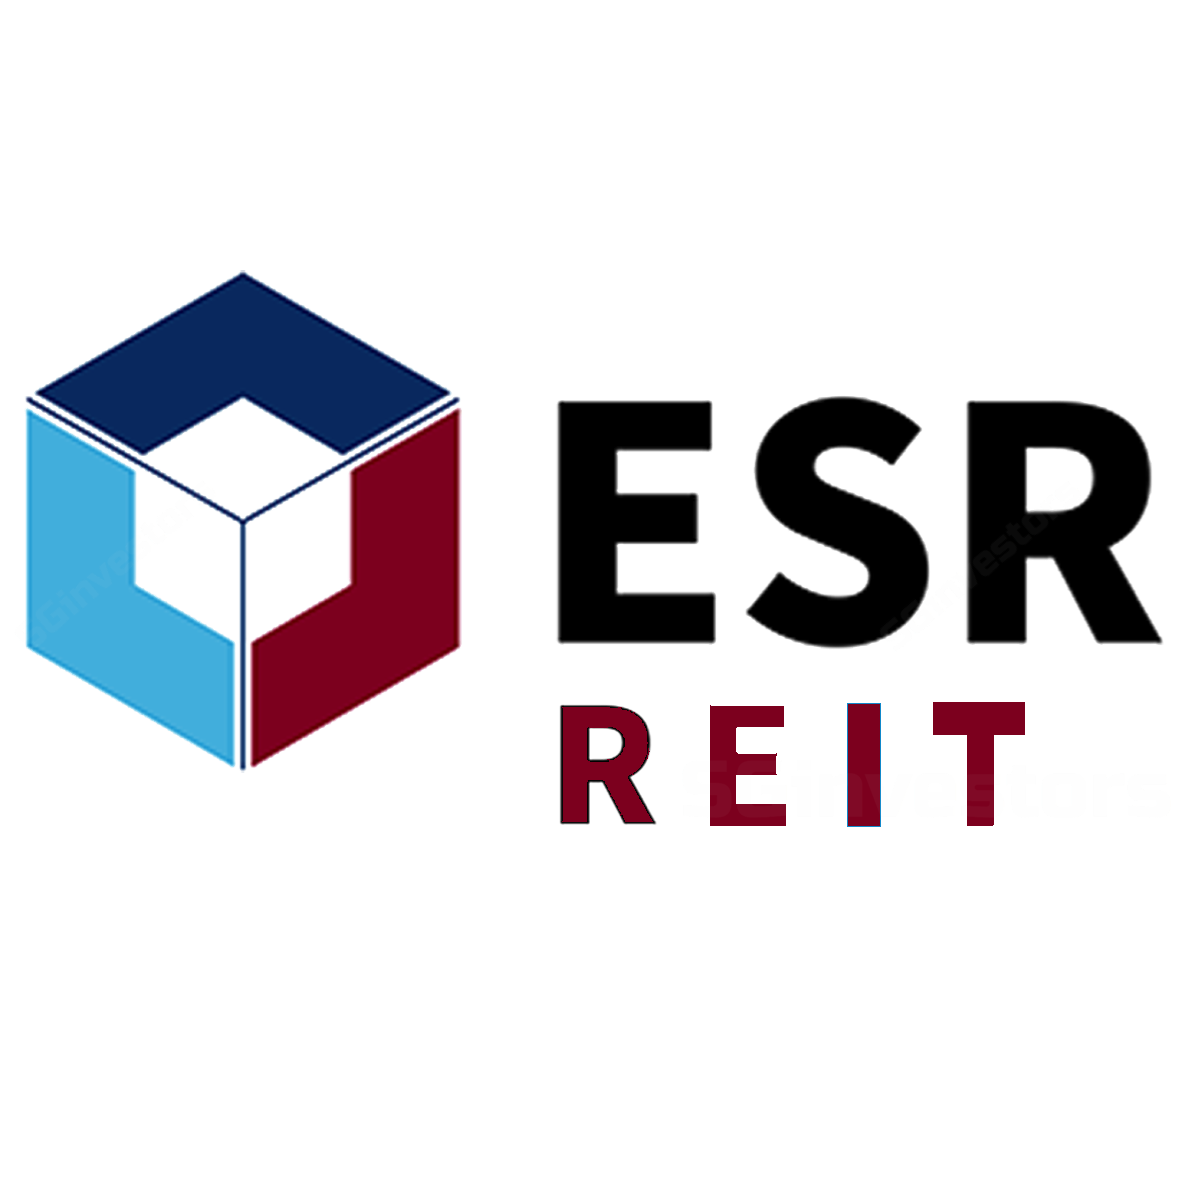 ESR REIT (EREIT SP) - DBS Vickers 2017-10-19: Waiting For Sponsor To Shed Light On Growth